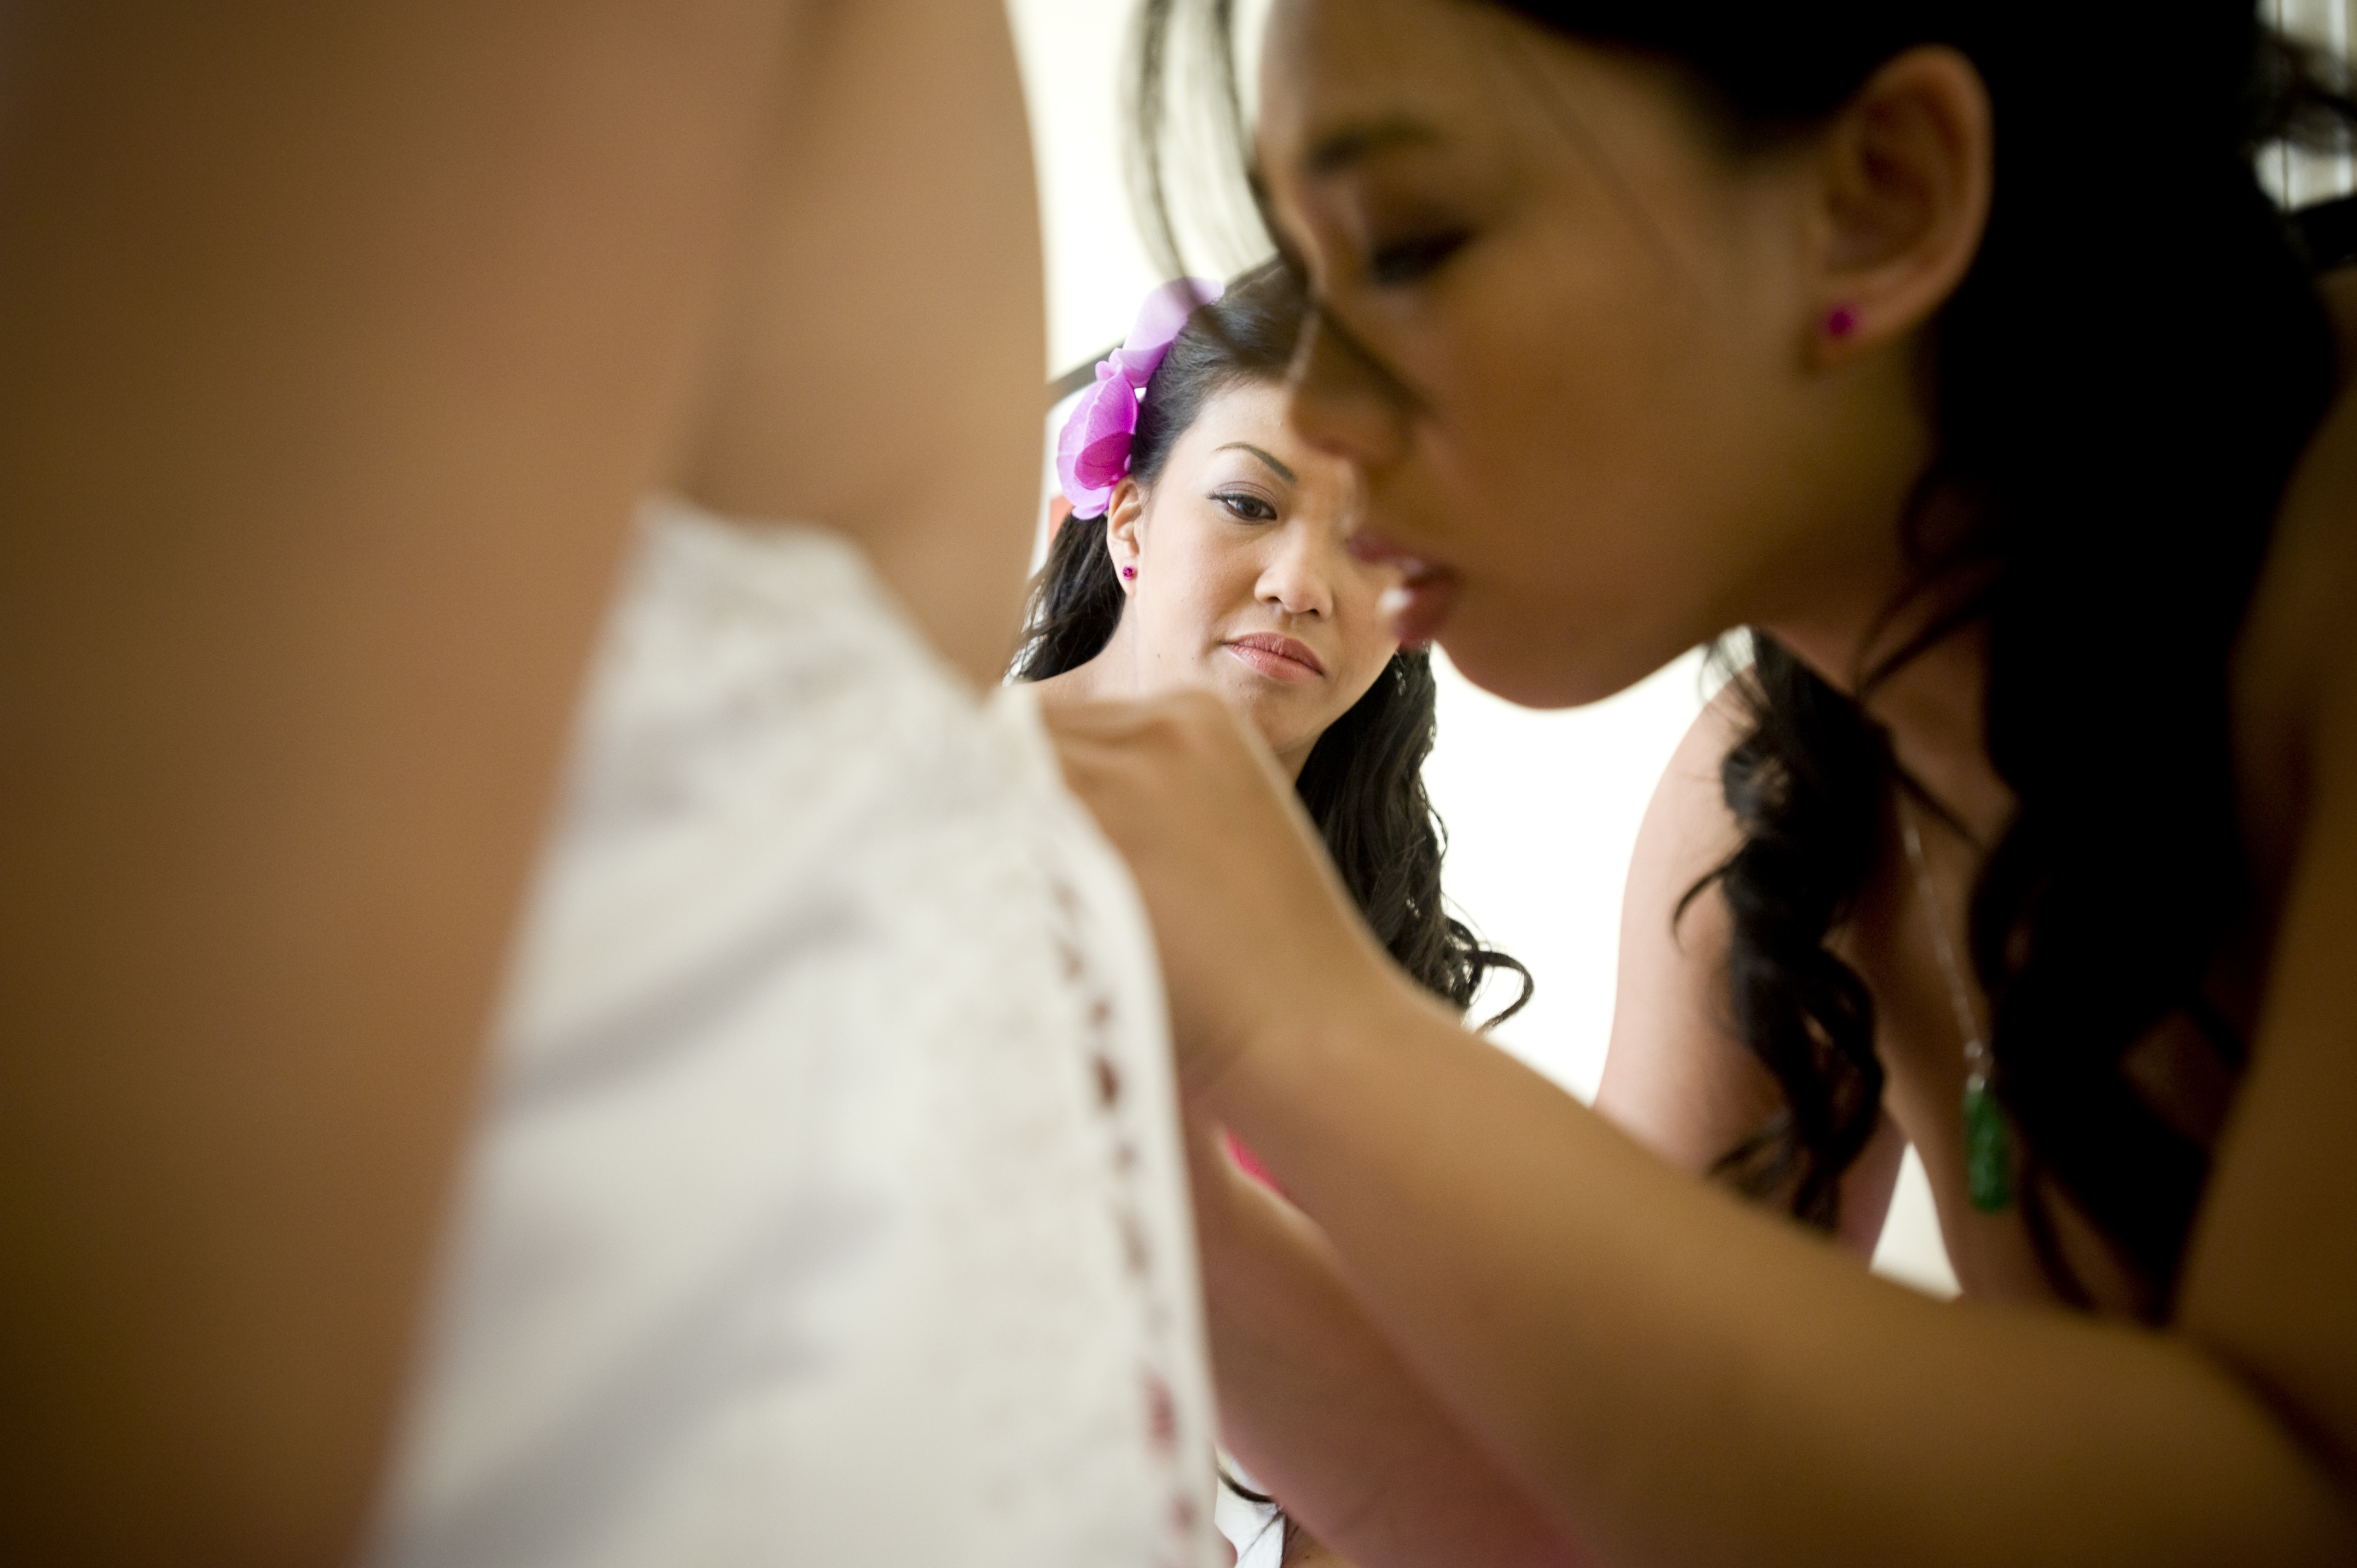 gettingready095